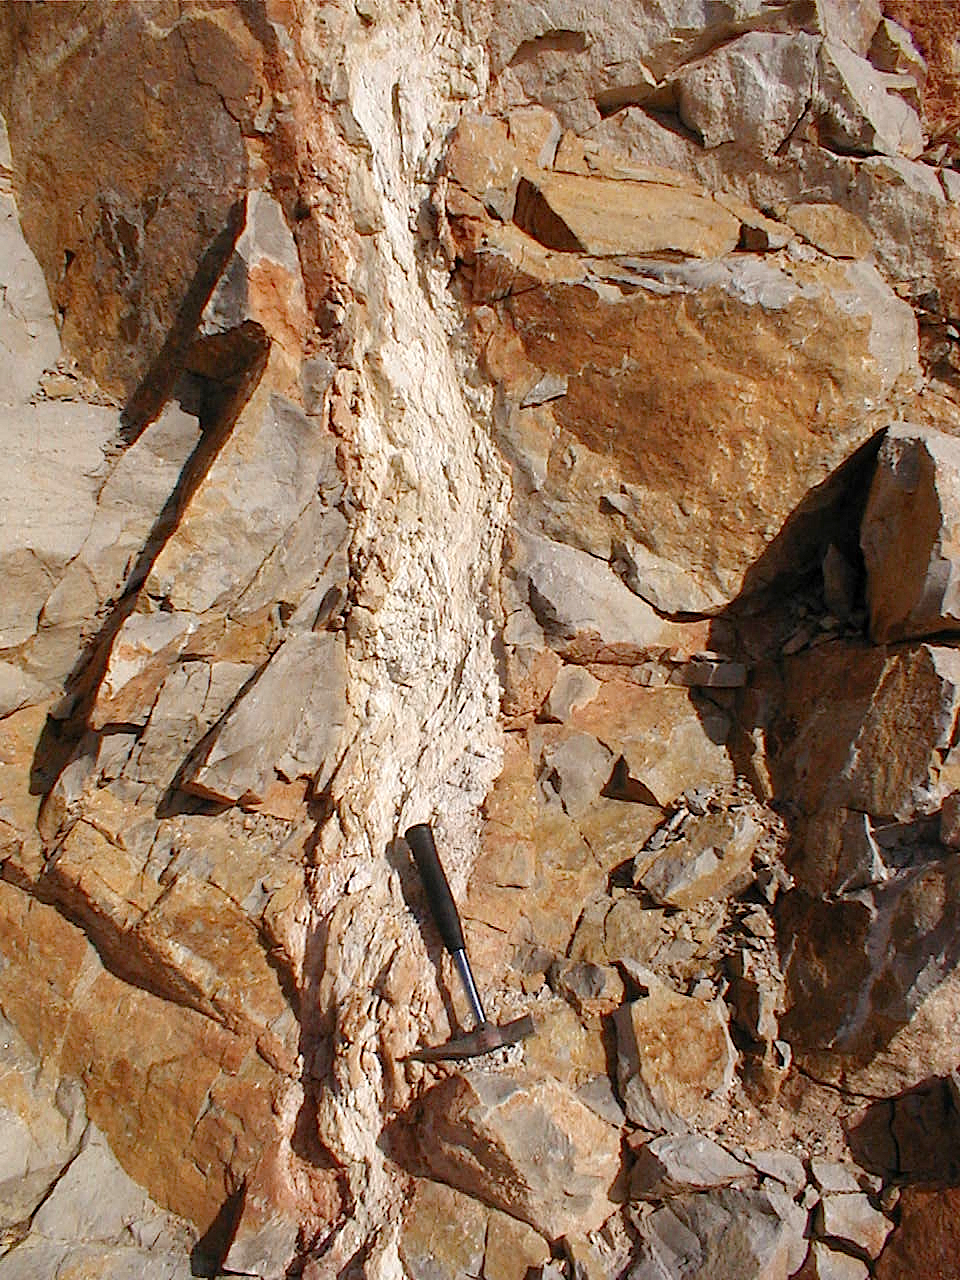 impact breccia dike with carbonate or decarbonization matrix, Corbalán, Rubielos de la Cérida impact basin Spain